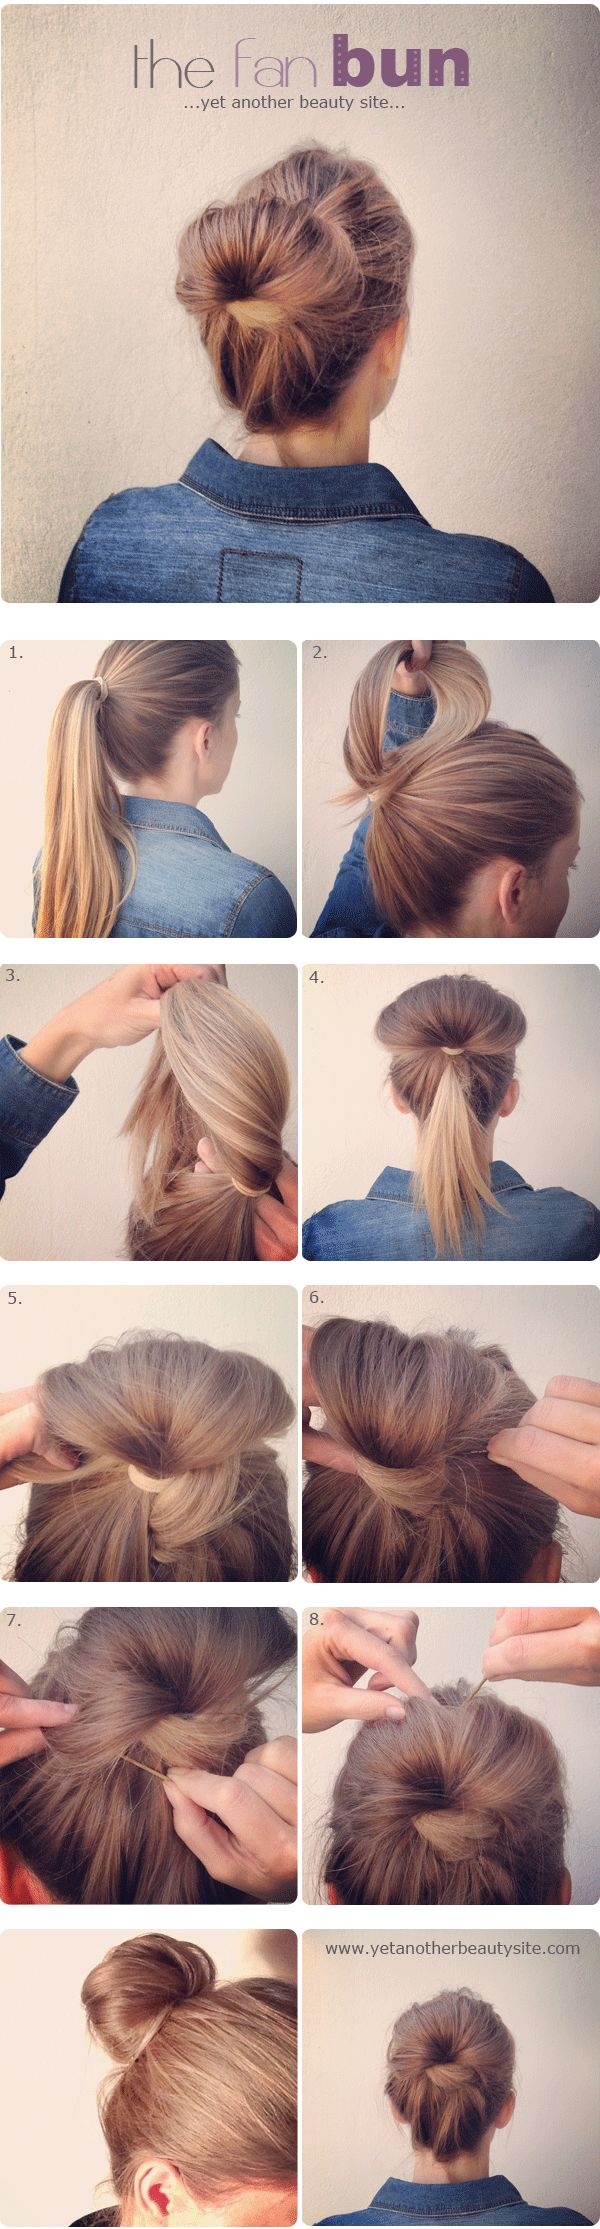 Hair Tutorials: Easy and Cute Hair Ideas for the Week